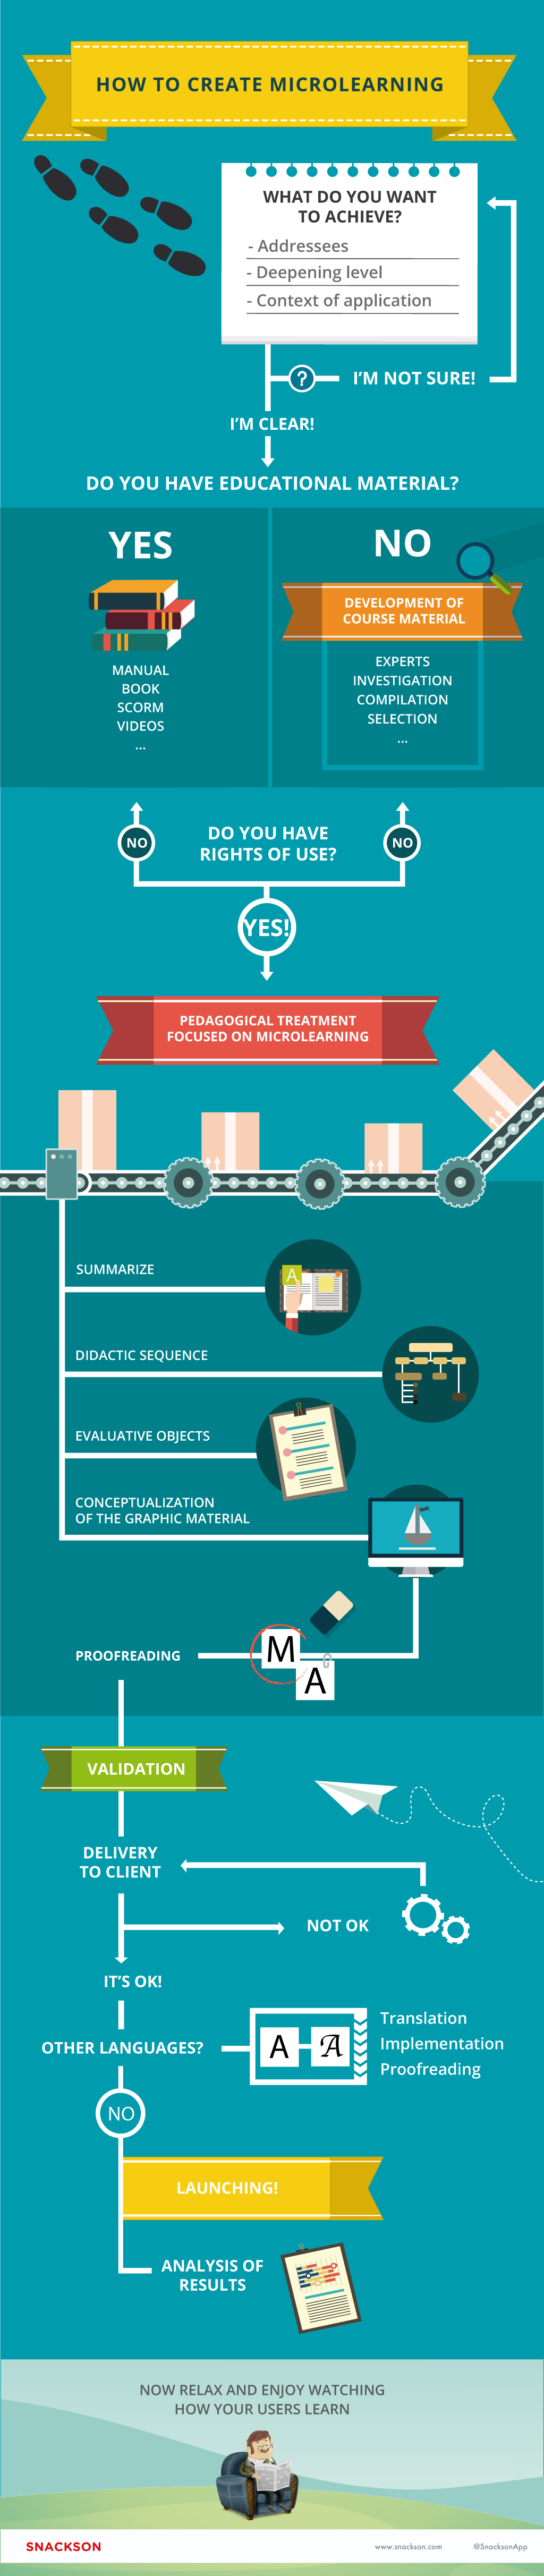 Microlearning creation process - an infographic - Snackson